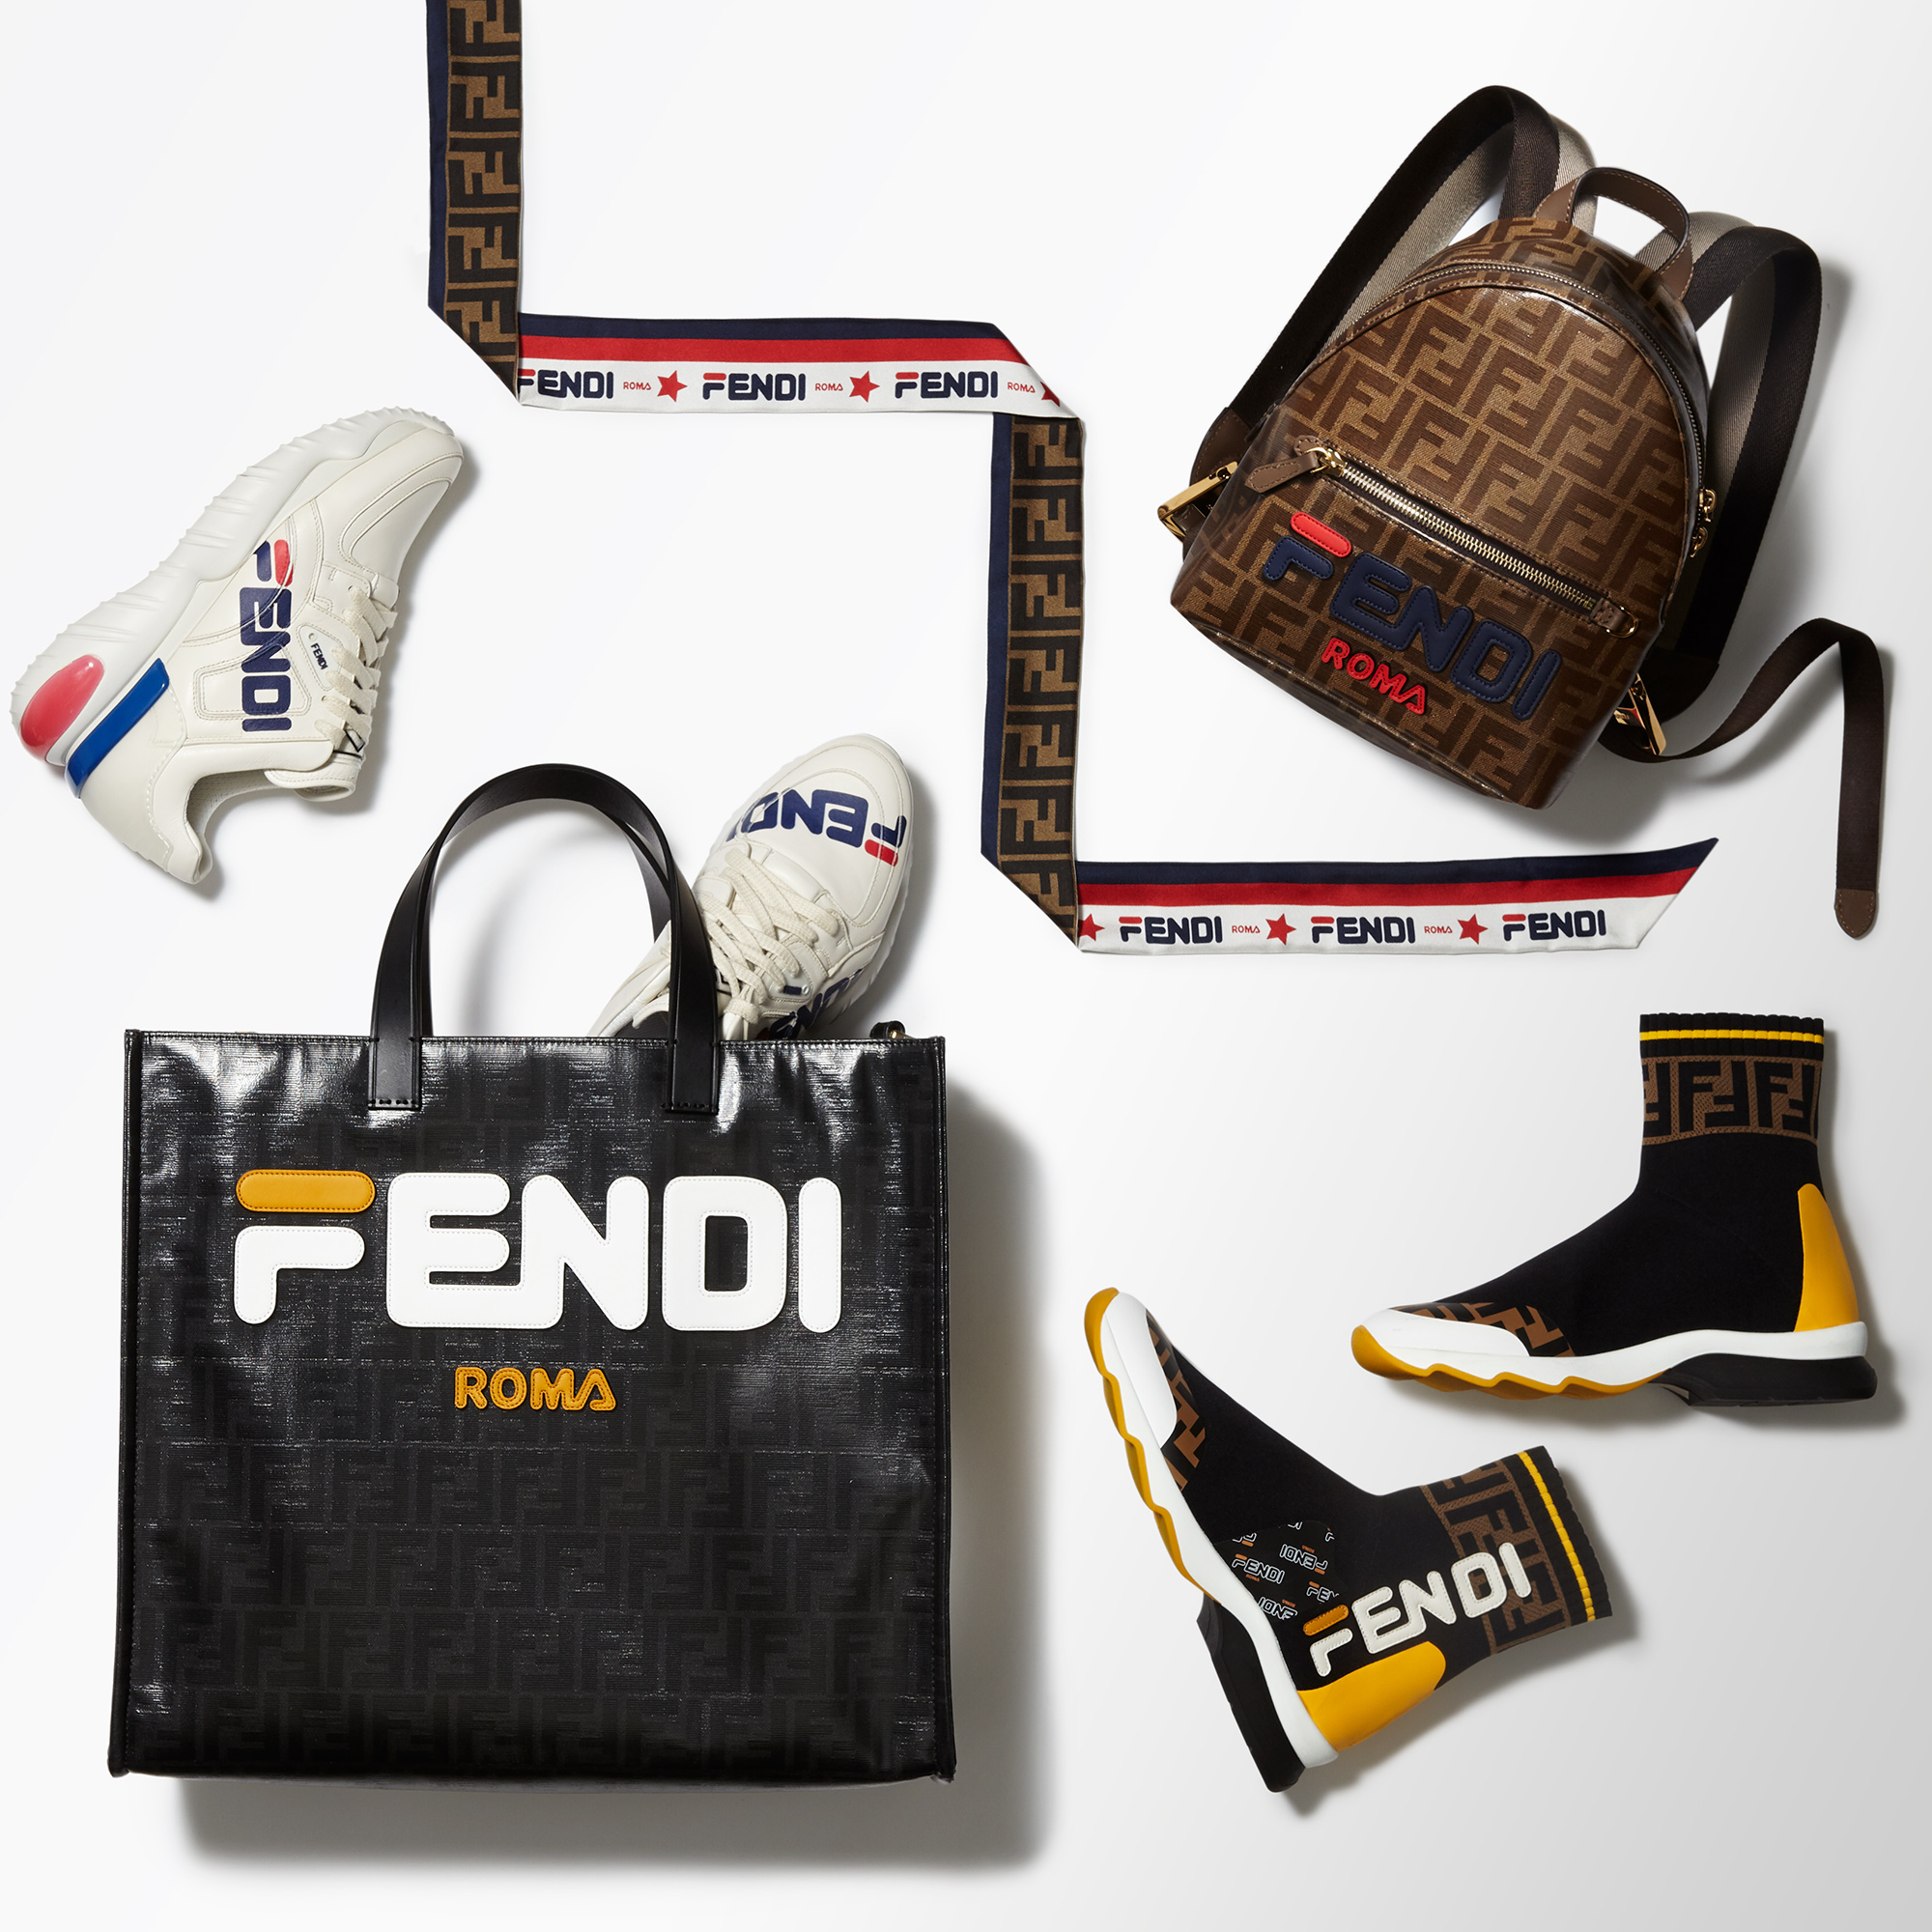 5fc697e711f4 Fila x Fendi Collection  Everything You Need To Know